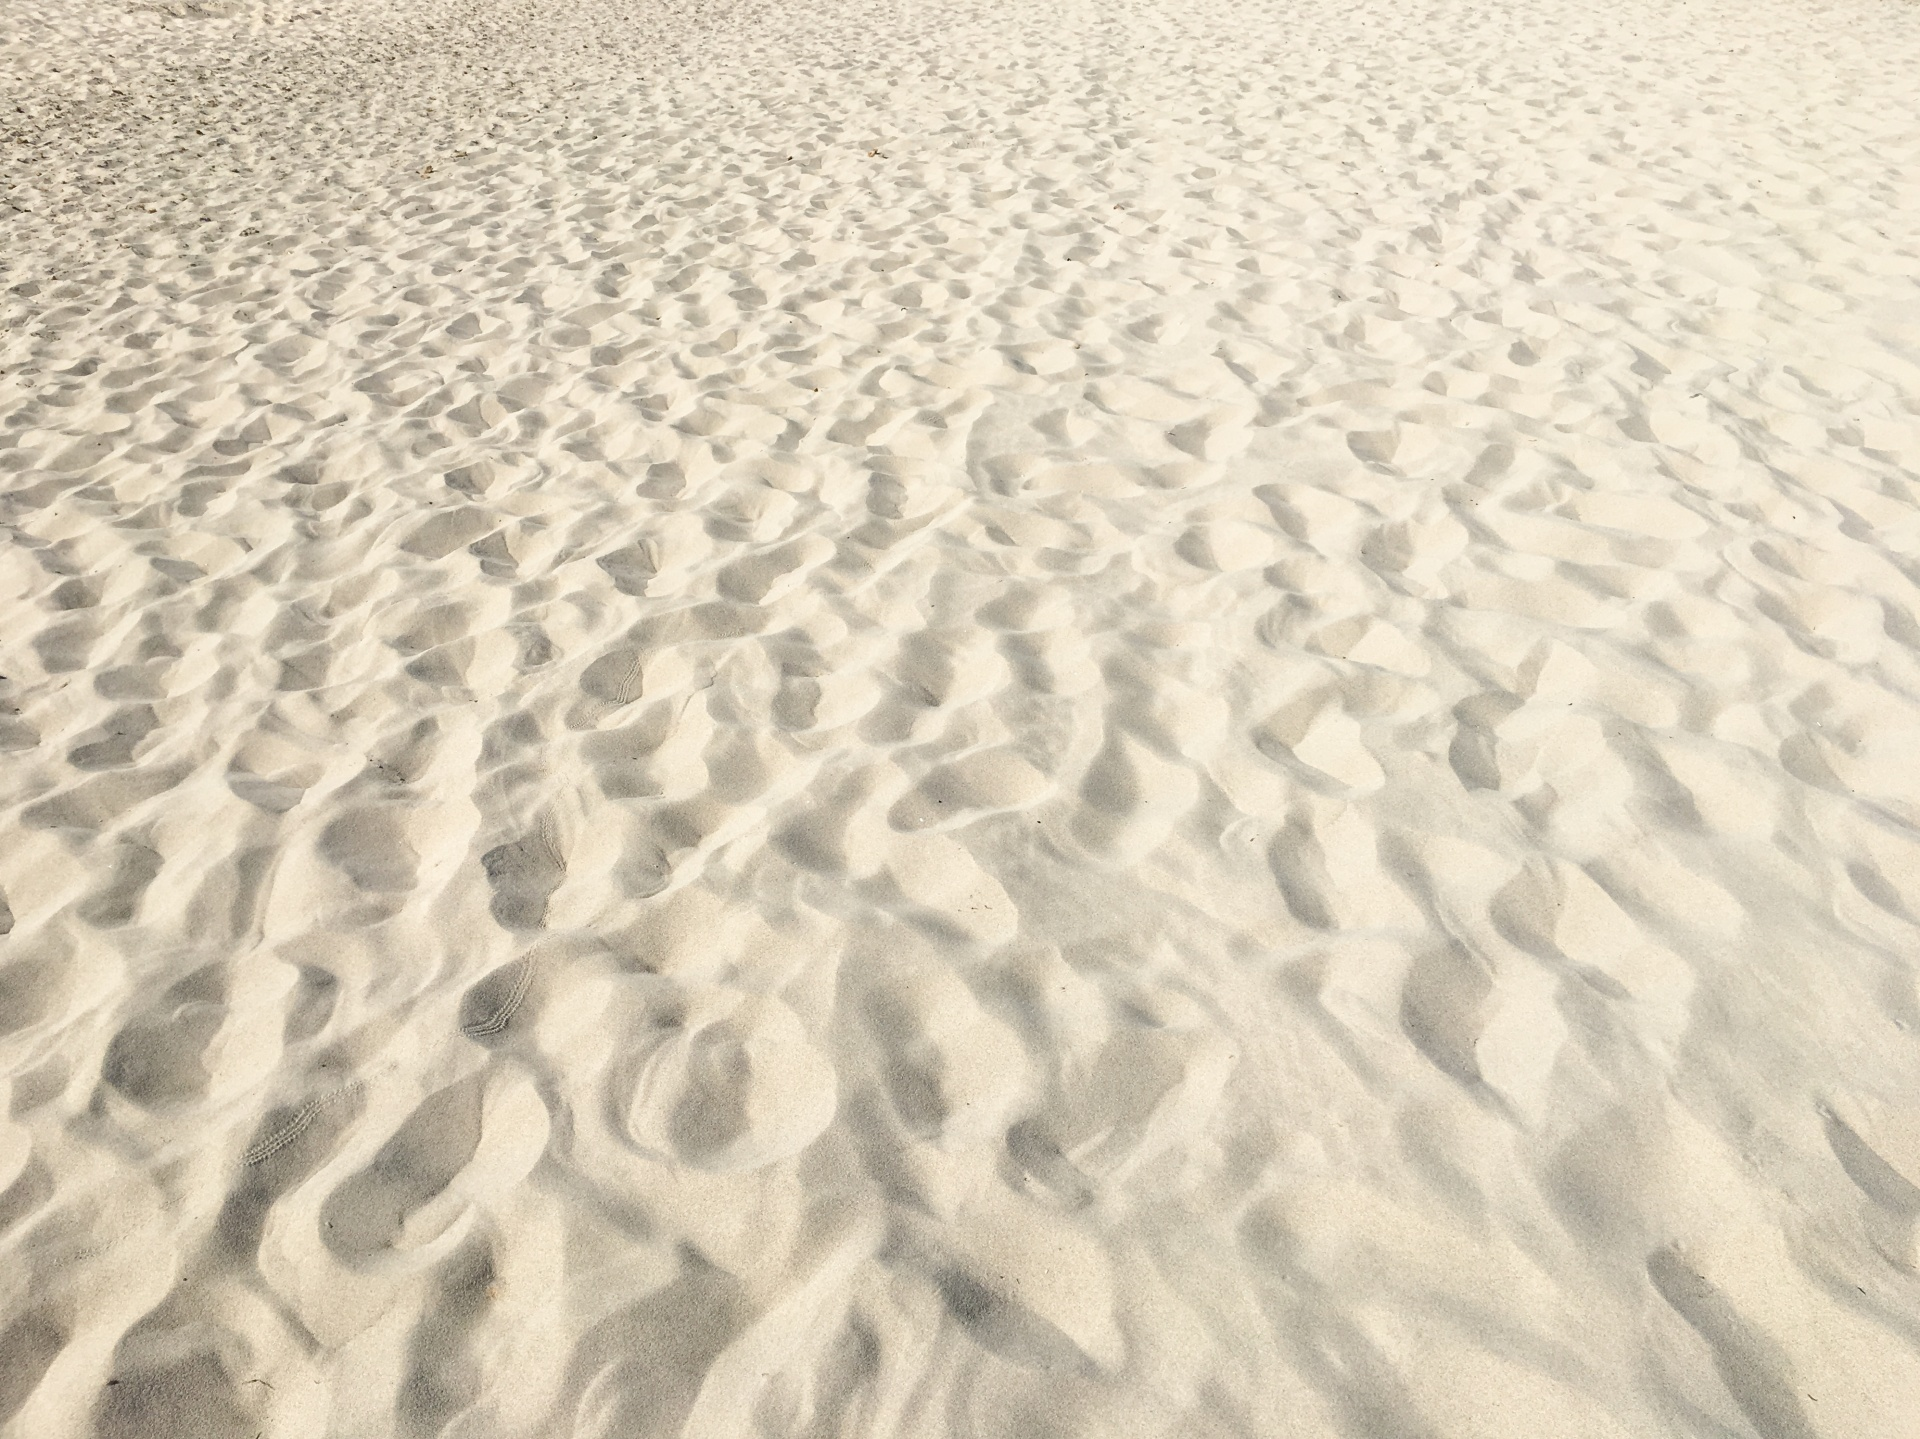 Beach Sand Background Free Stock Photo - Public Domain Pictures